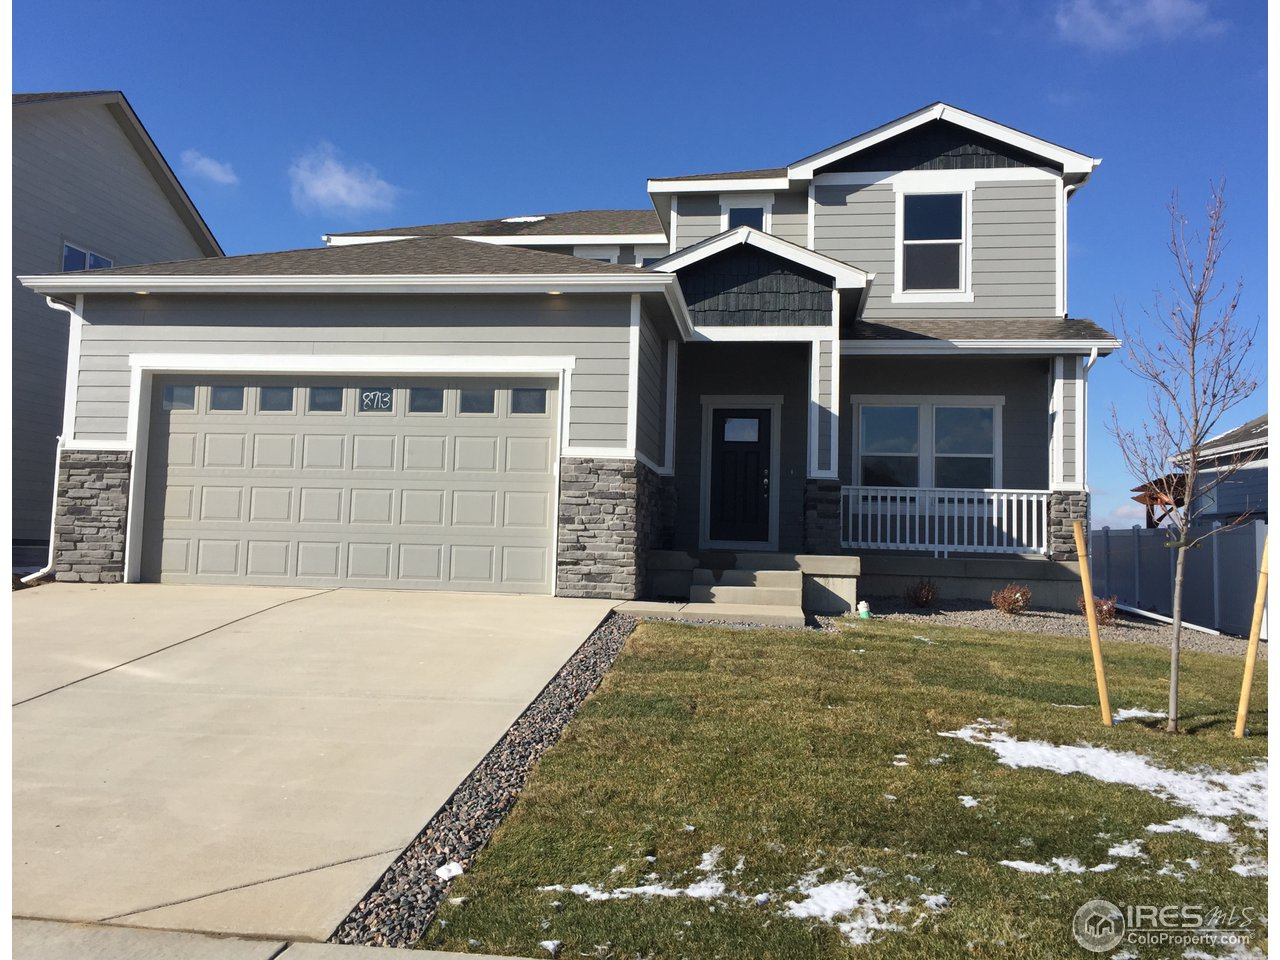 8713 15th St Rd, Greeley CO 80634